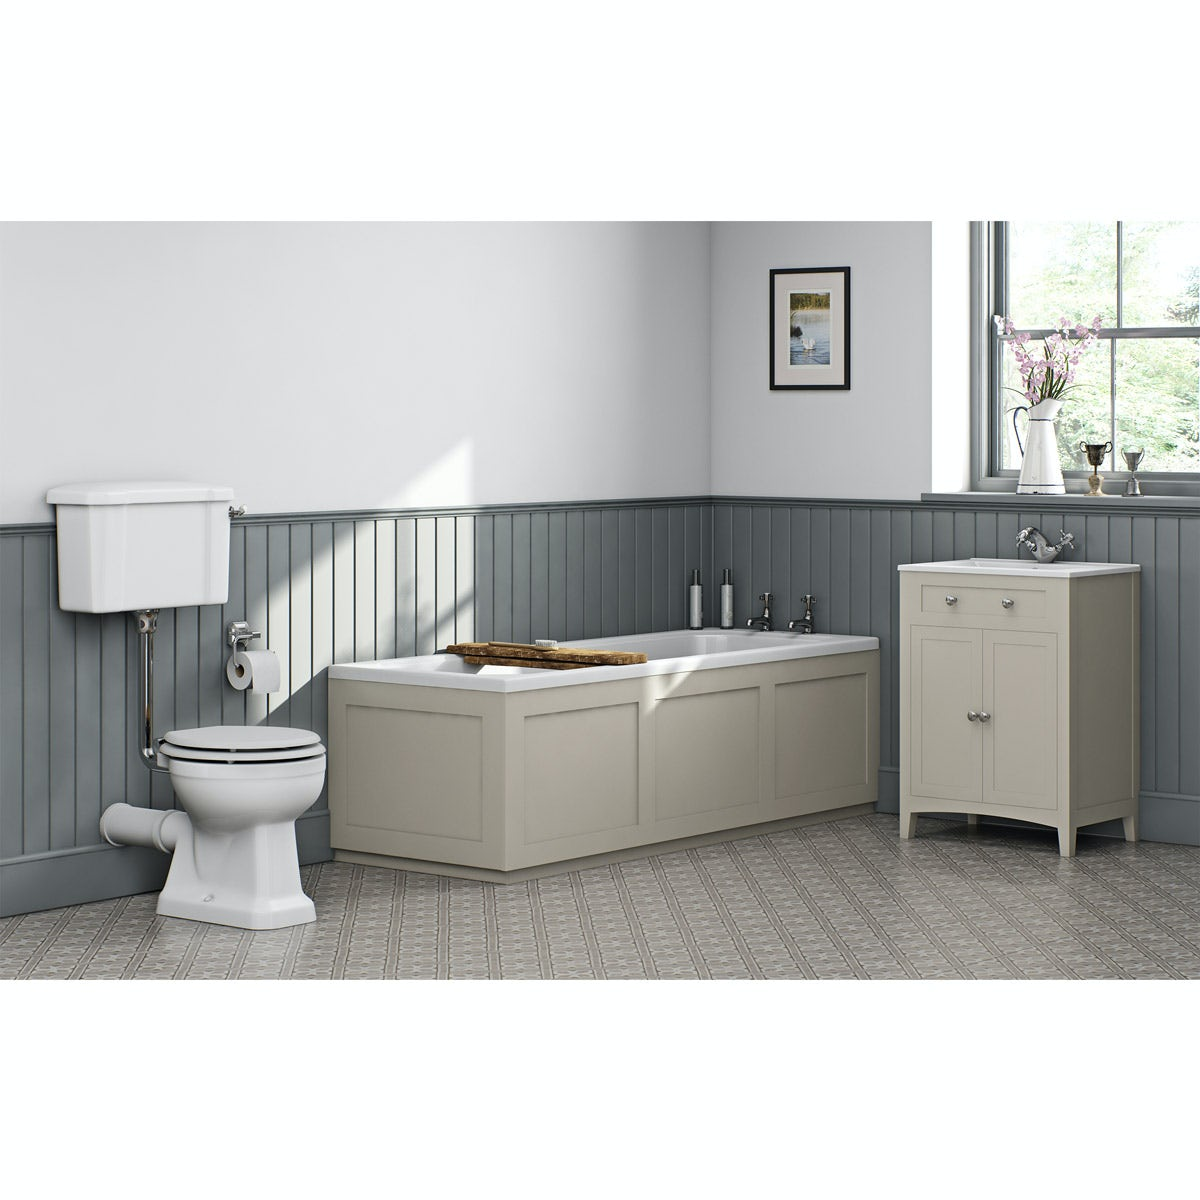 The bath co camberley ivory low level furniture suite with straight bath 1700 x 700mm